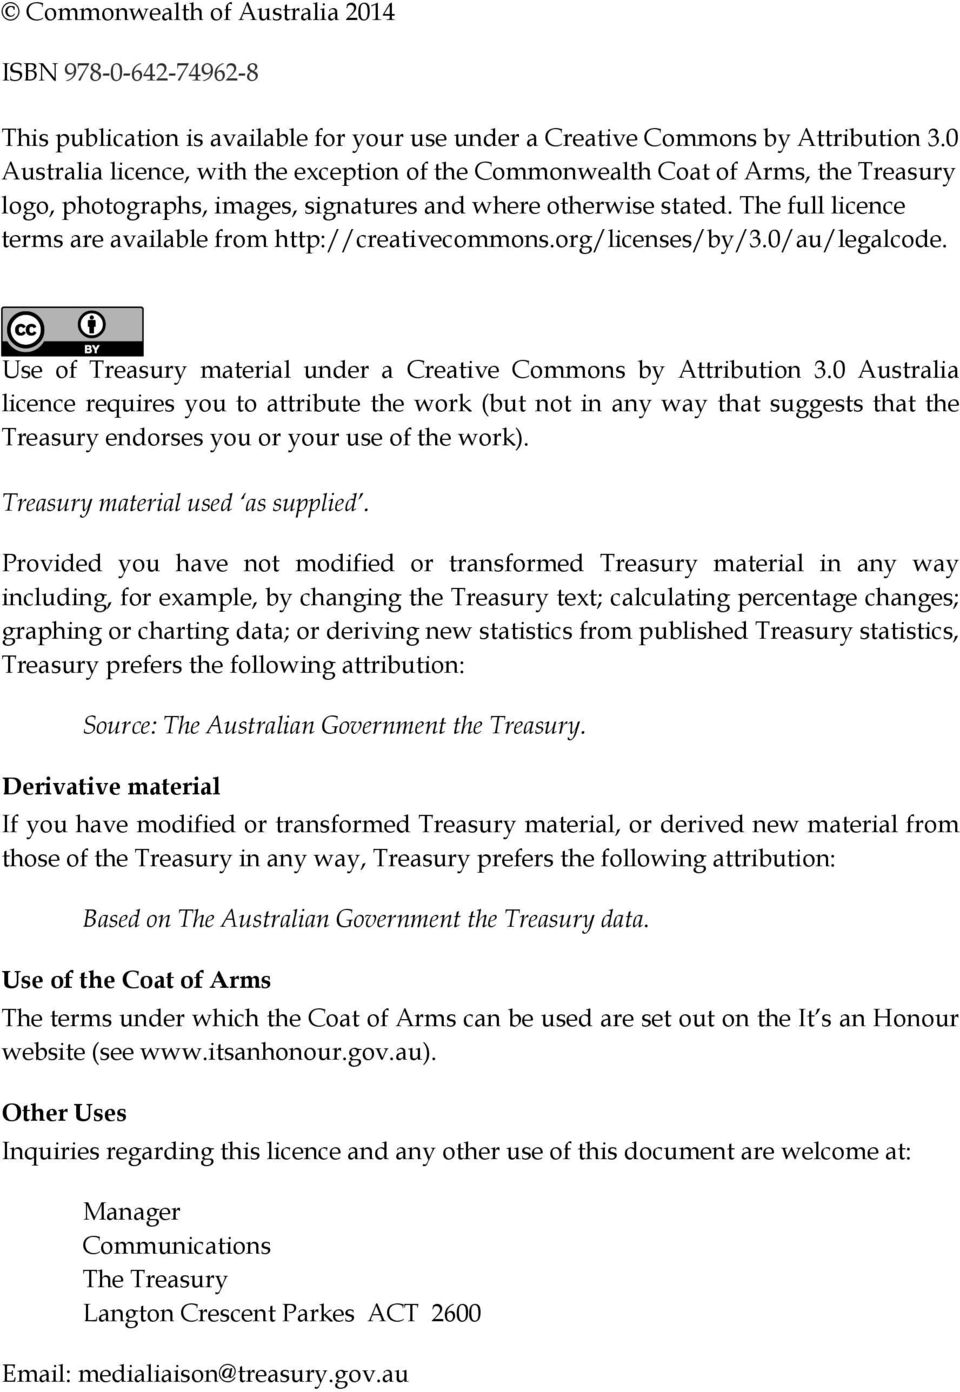 The full licence terms are available from http://creativecommons.org/licenses/by/3.0/au/legalcode. Use of Treasury material under a Creative Commons by Attribution 3.